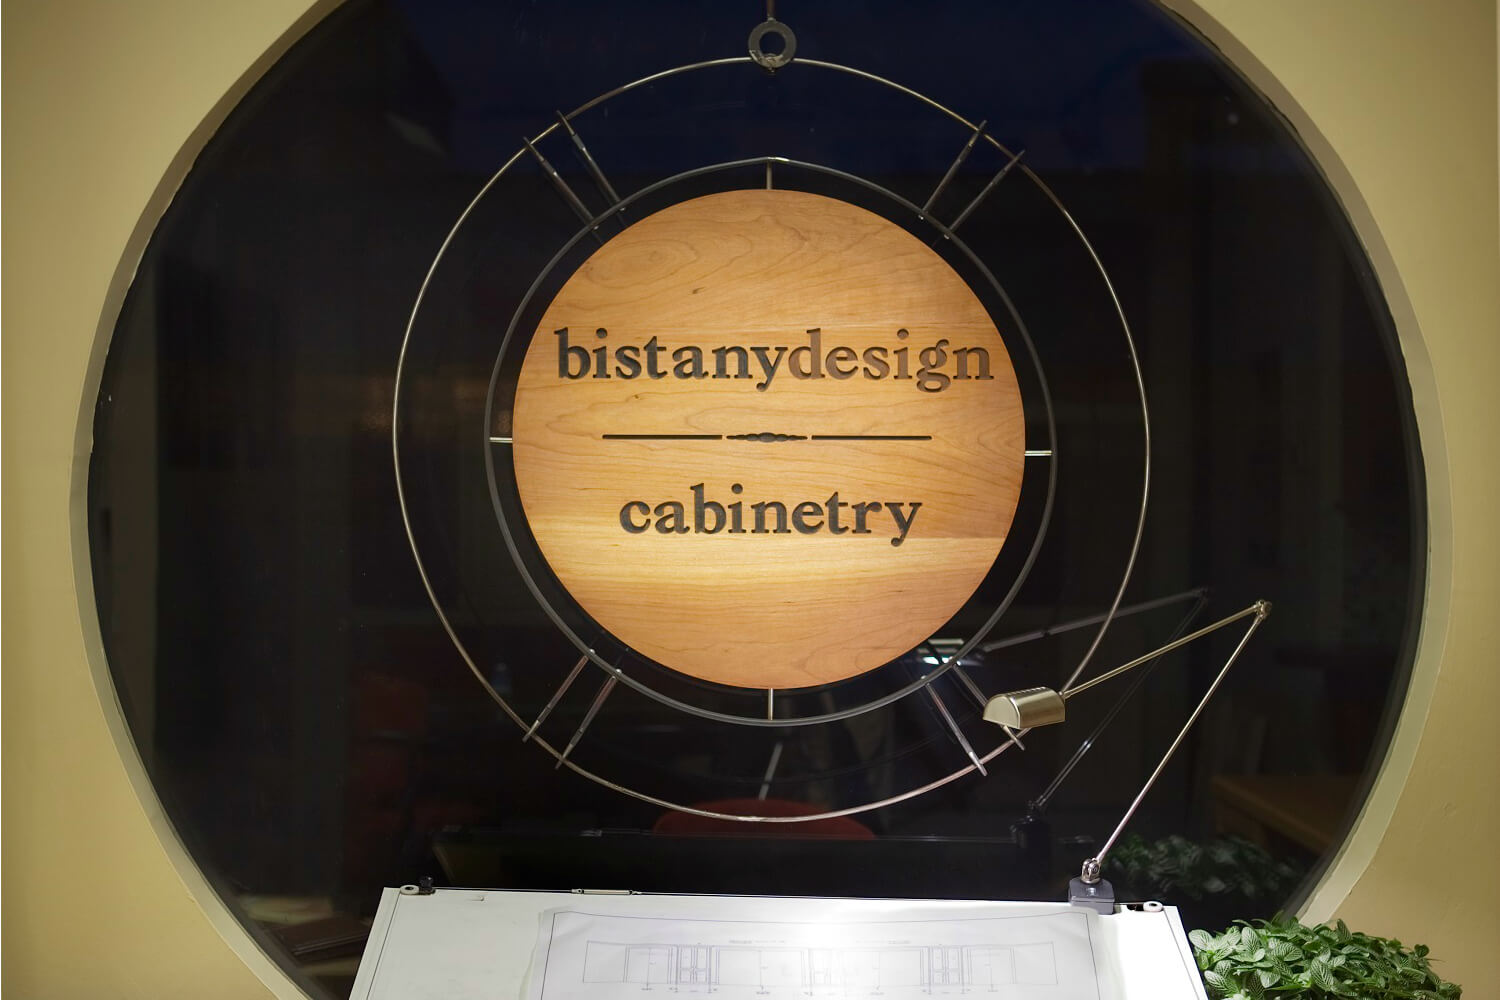 Visit the Bistany Design Showroom for Custom Cabinet Ideas